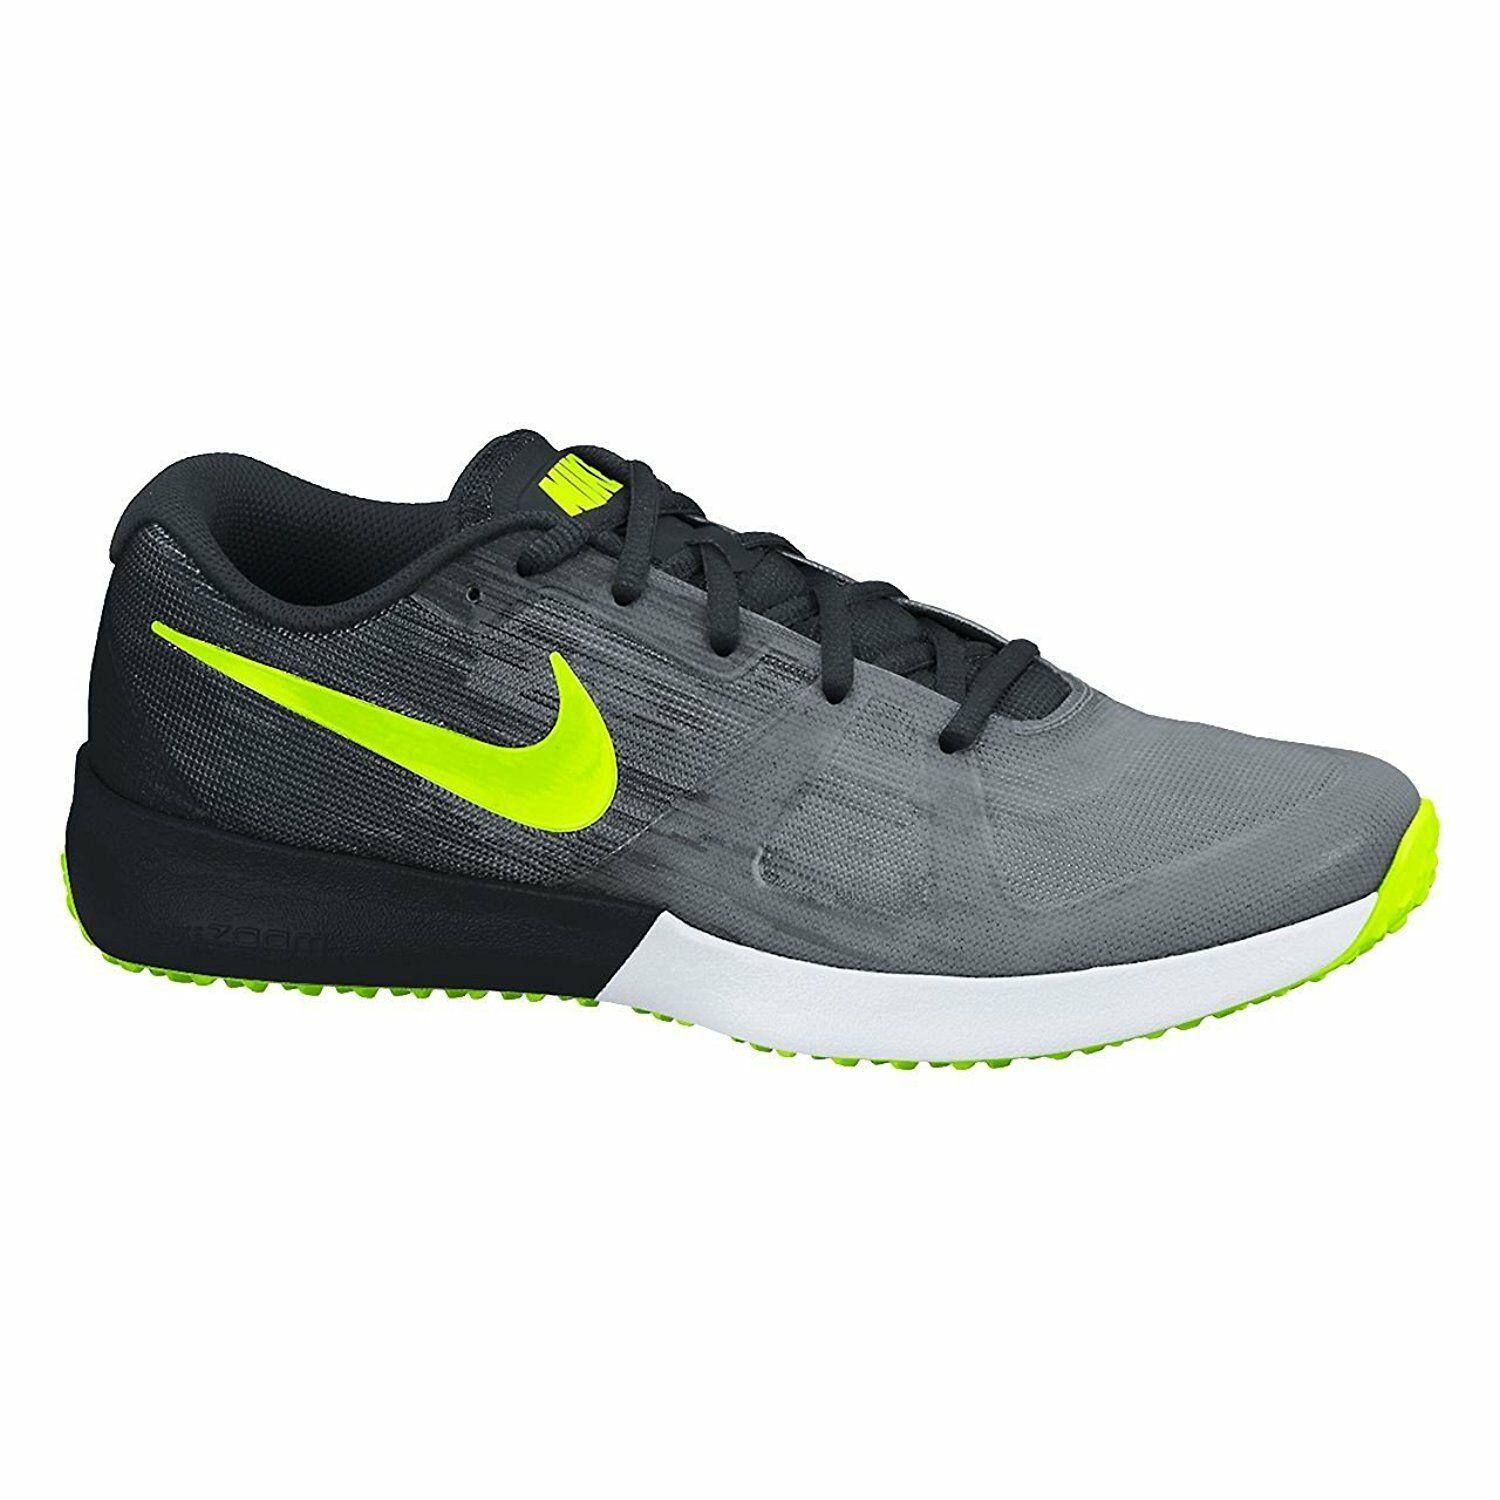 Men's Nike Zoom Speed TR Training shoes, 630855 070 Size 9 Cool Grey Volt Black